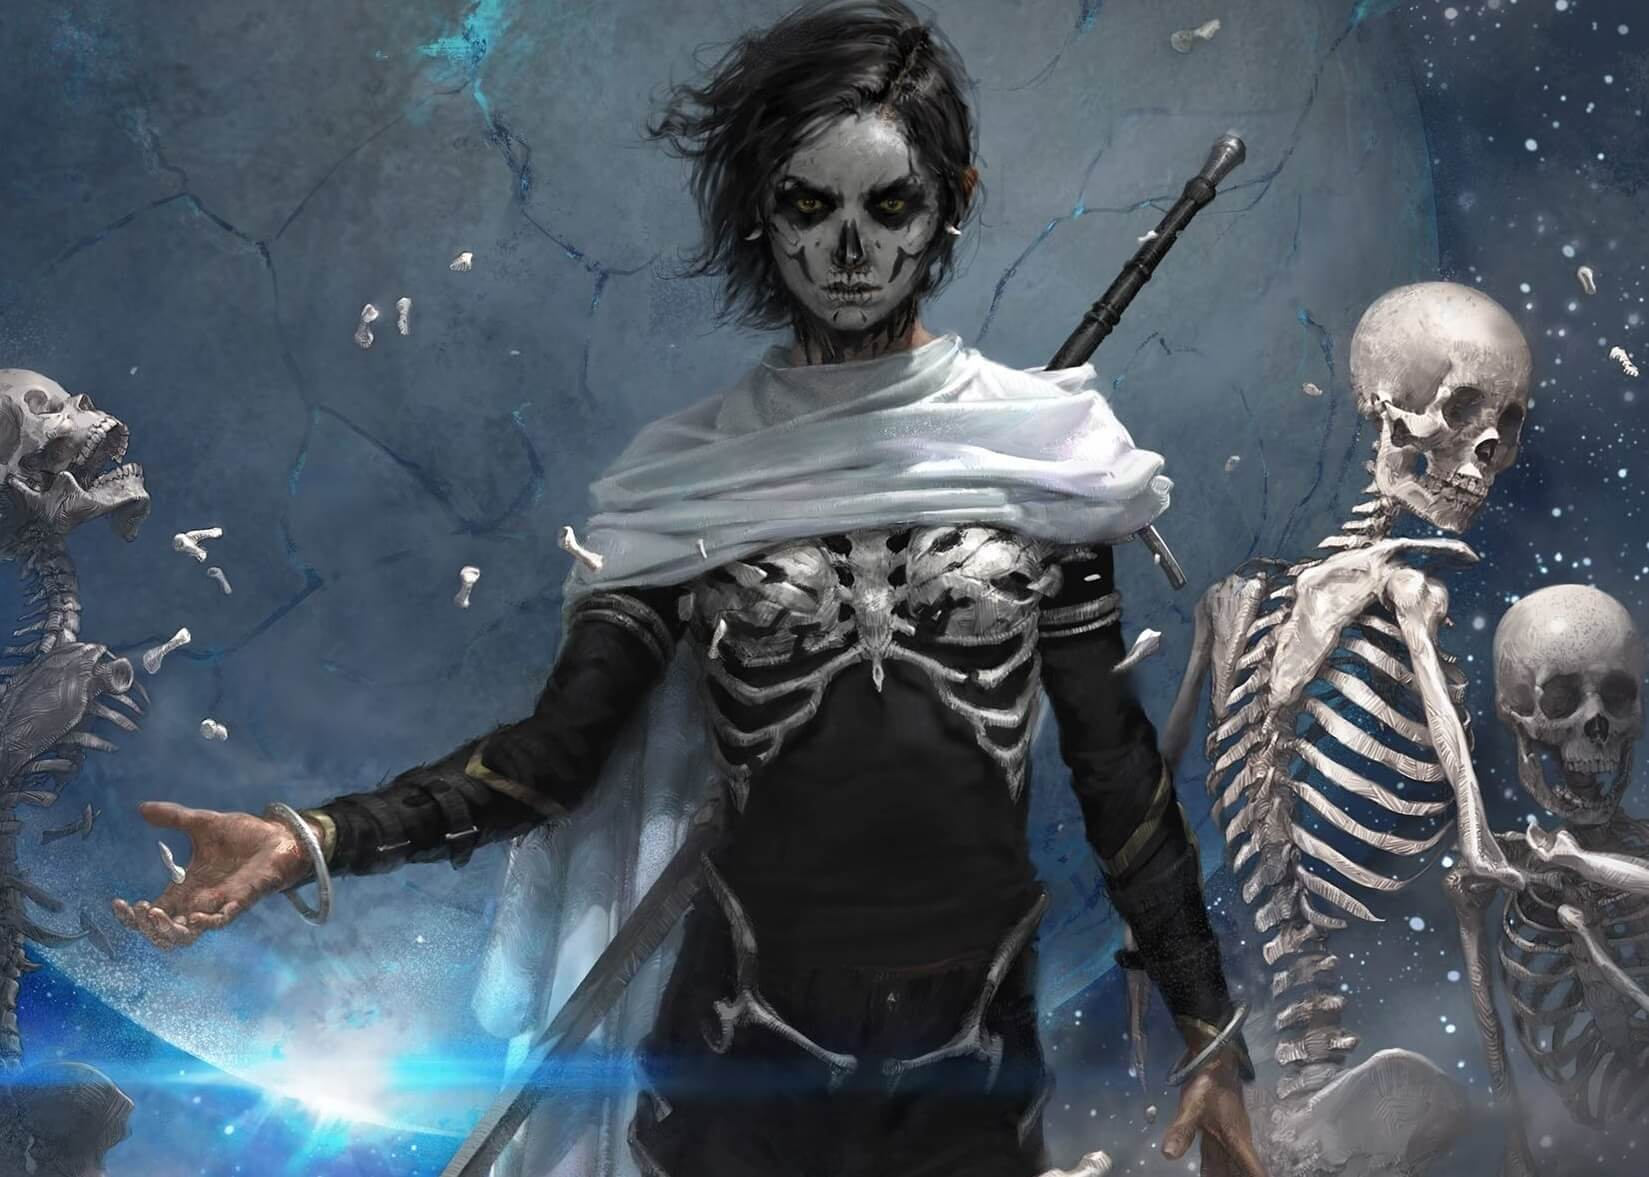 A figure walks forward dressed in skeletal attire and mask, with skeletons behind them